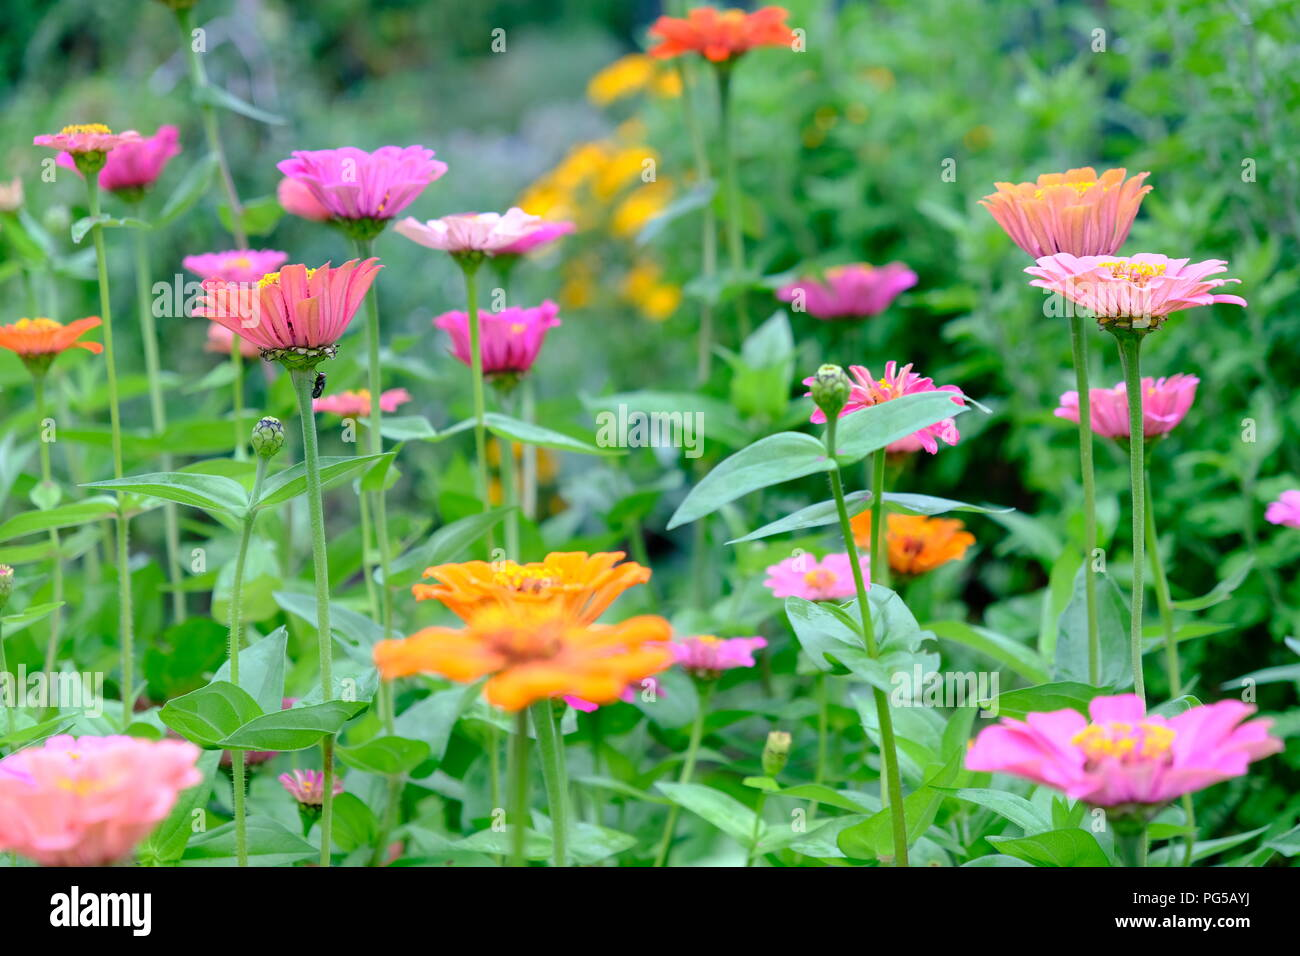 A Colorful Flower Scene Pink And Orange Flowers Surrounded By A